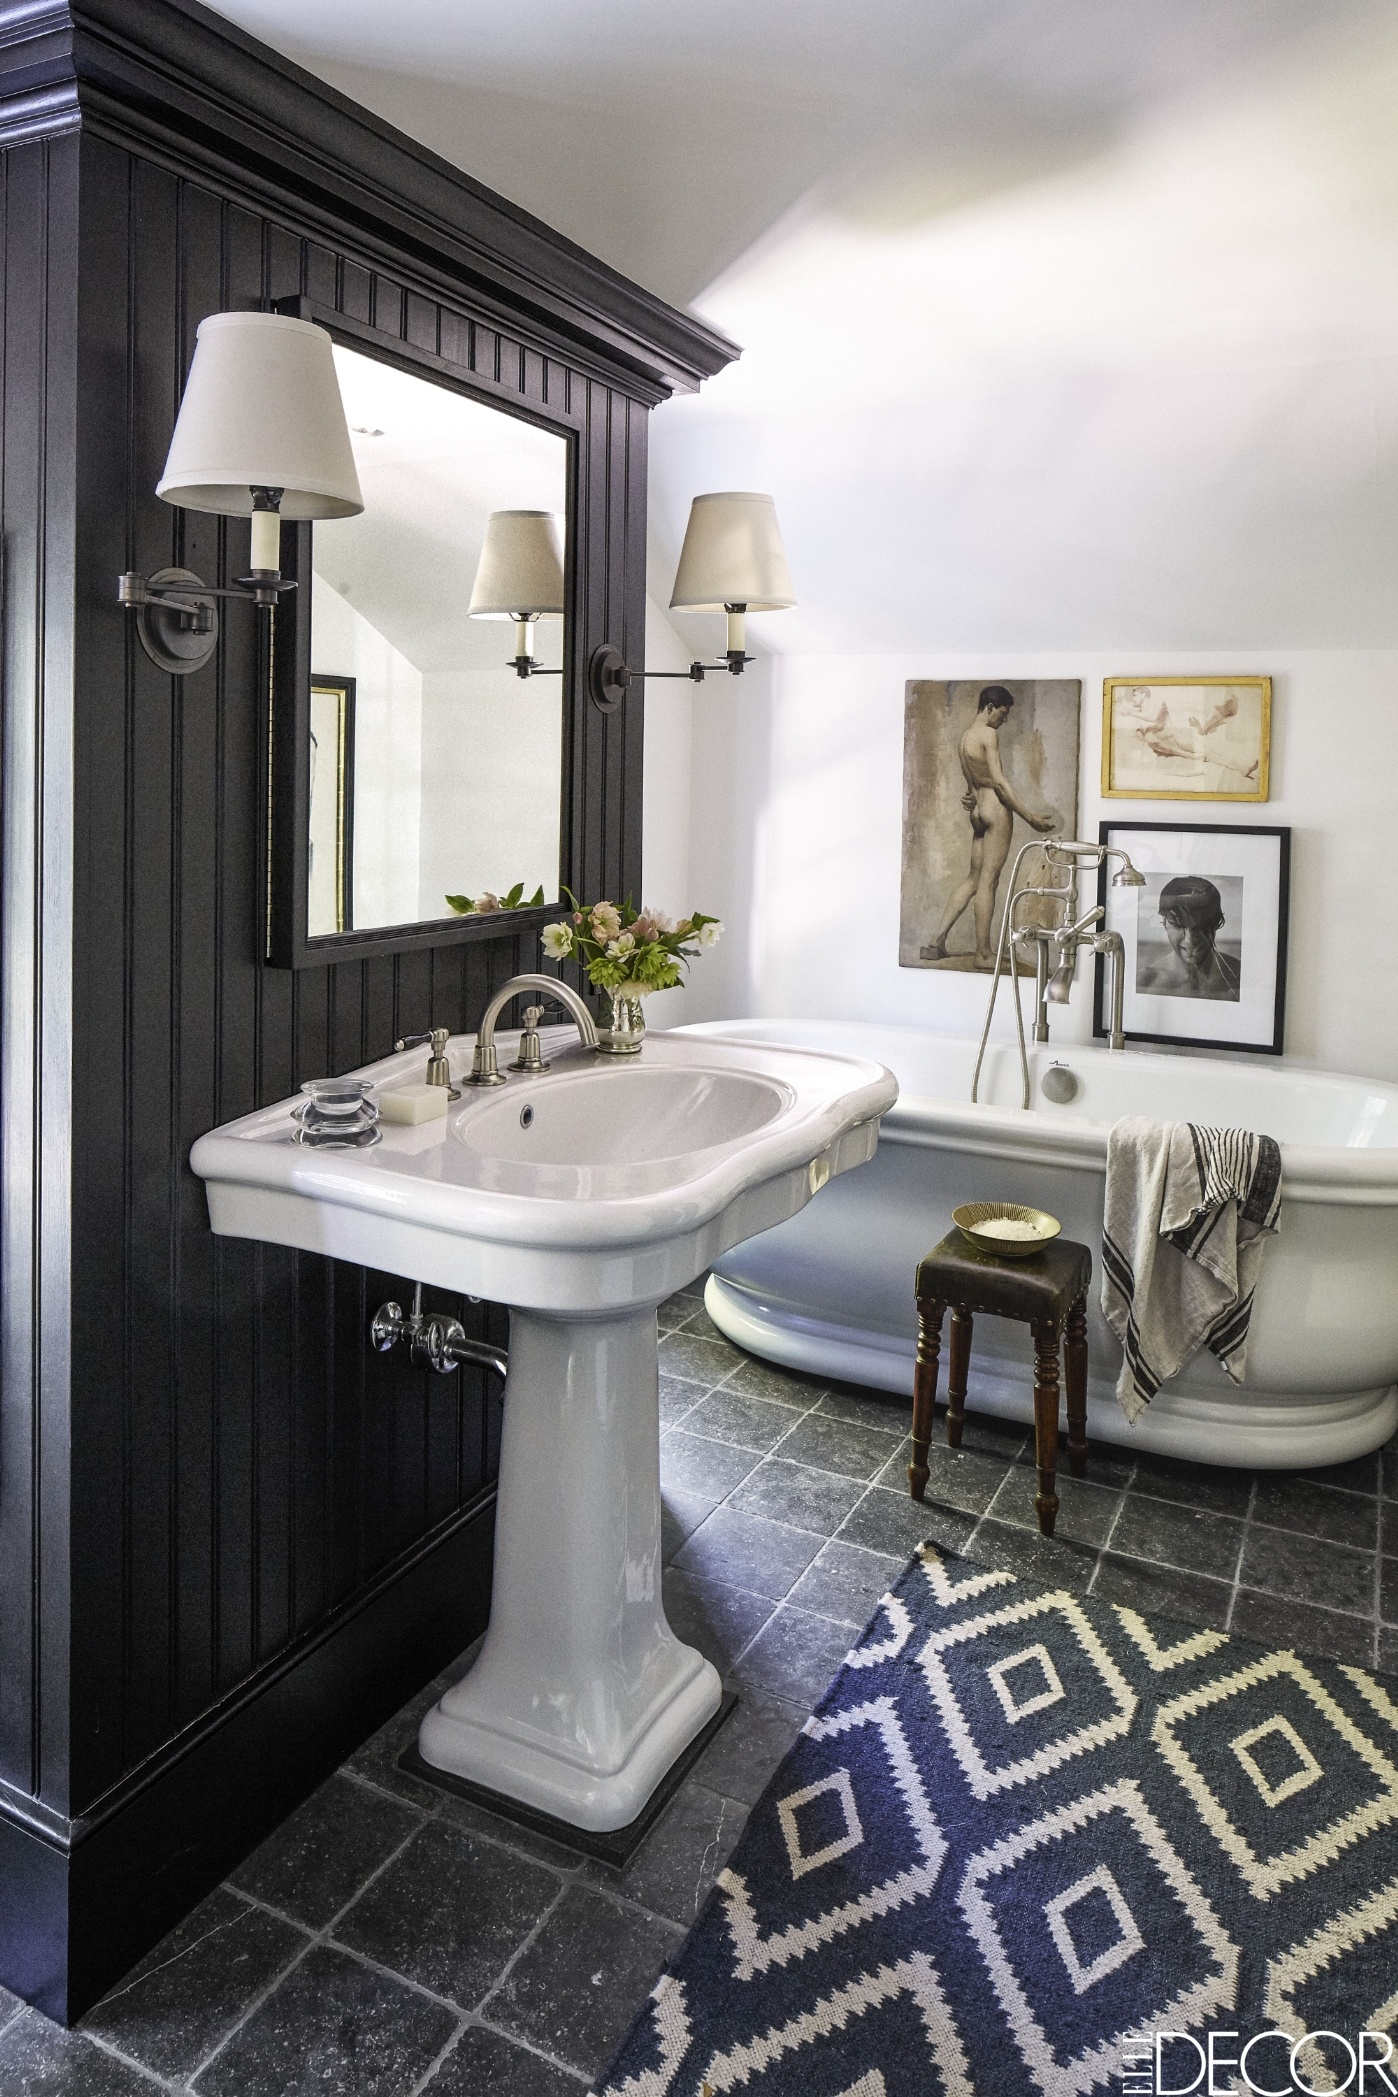 small bathrooms 35 best small bathroom ideas - small bathroom ideas and designs WJXBOAF